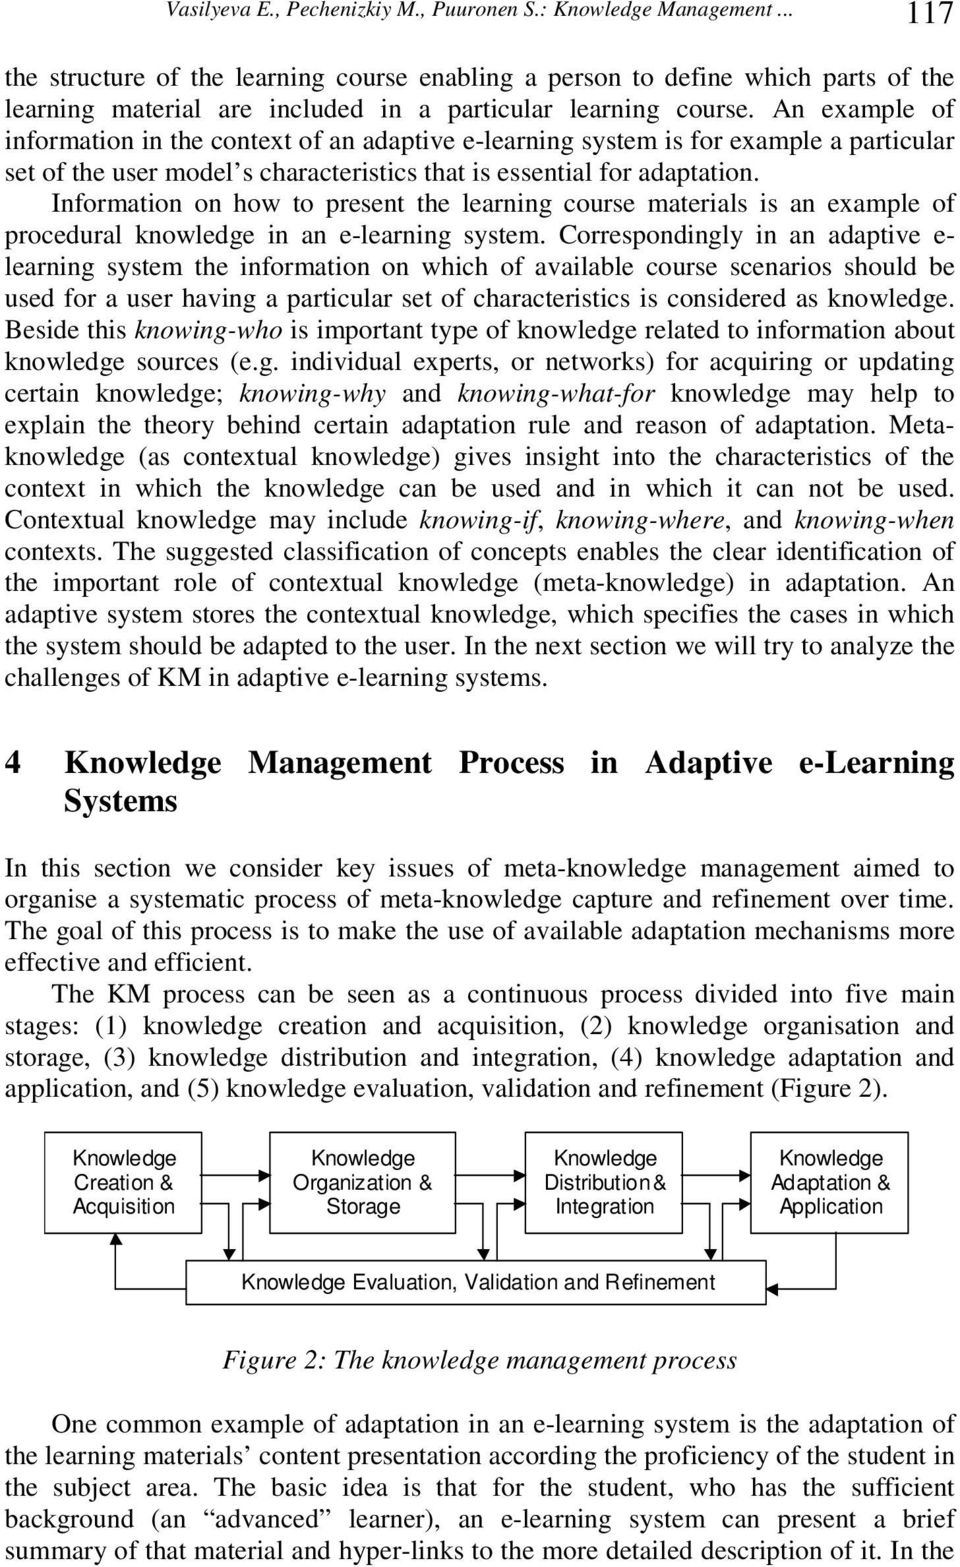 An example of information in the context of an adaptive e-learning system is for example a particular set of the user model s characteristics that is essential for adaptation.